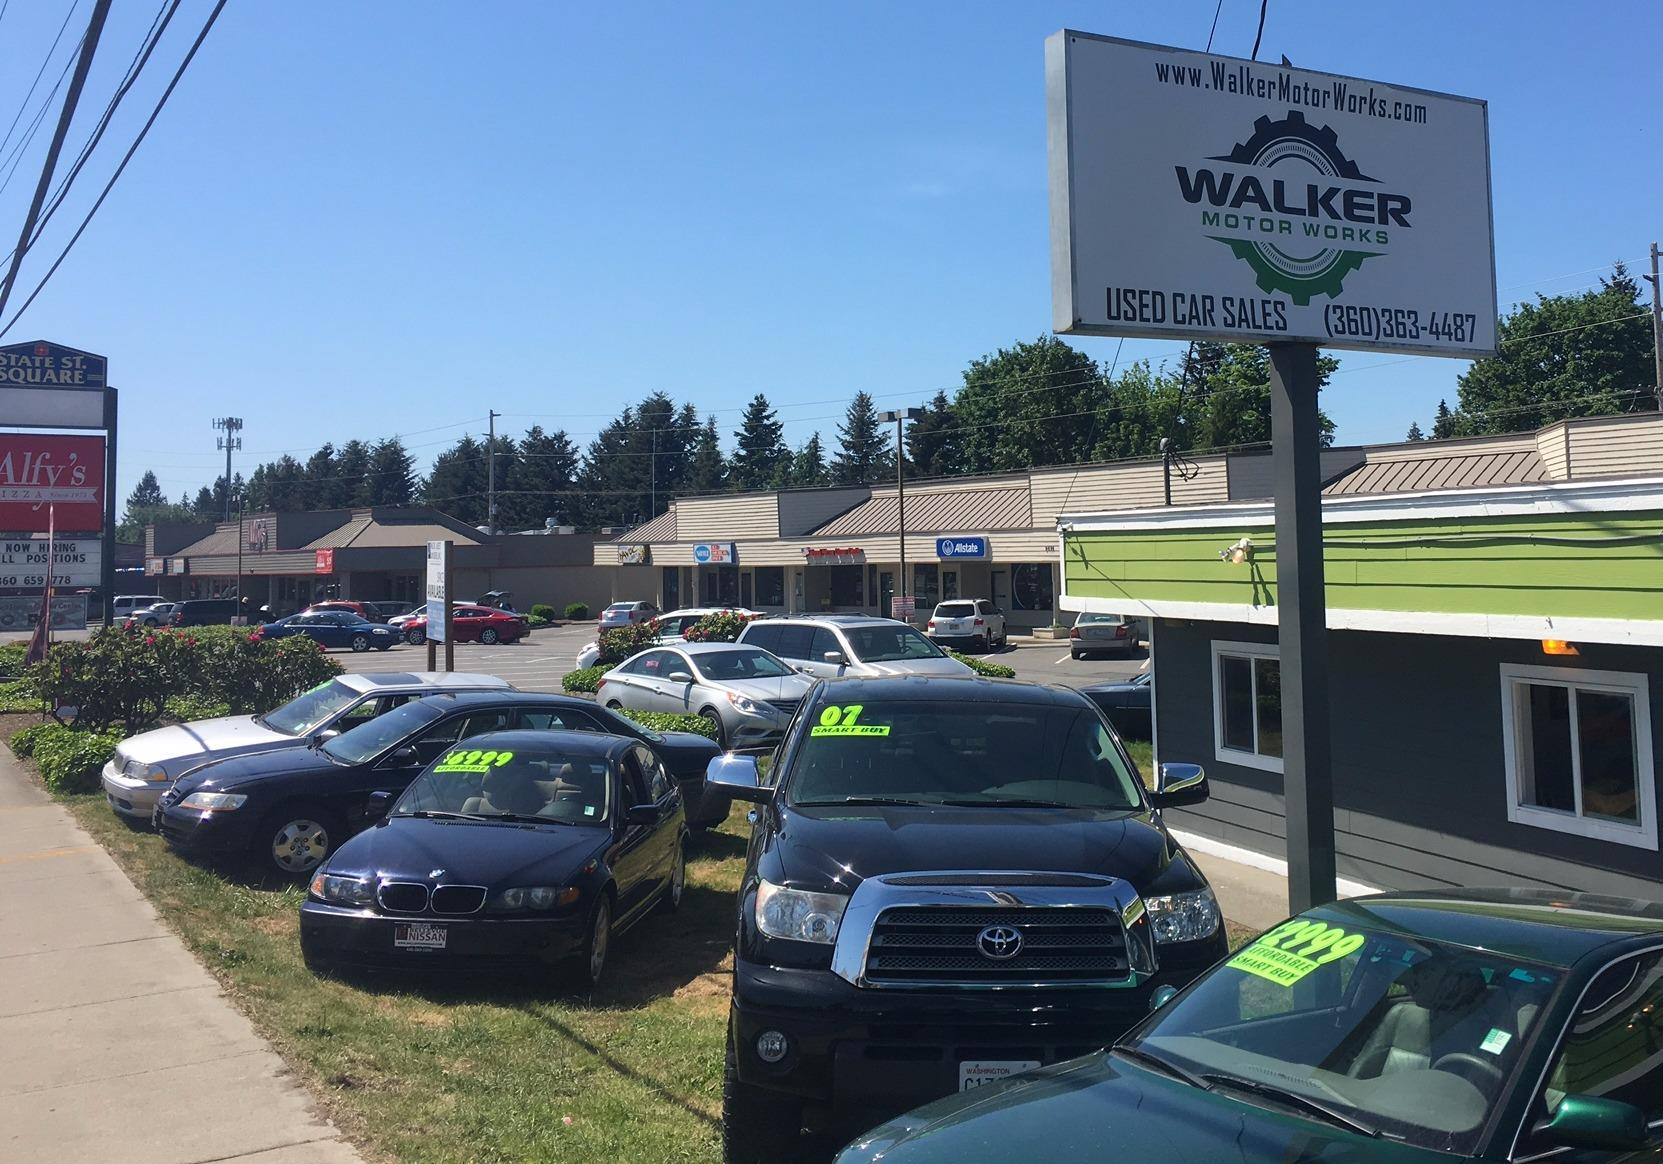 Walker Motor Works Coupons Near Me In Marysville 8coupons